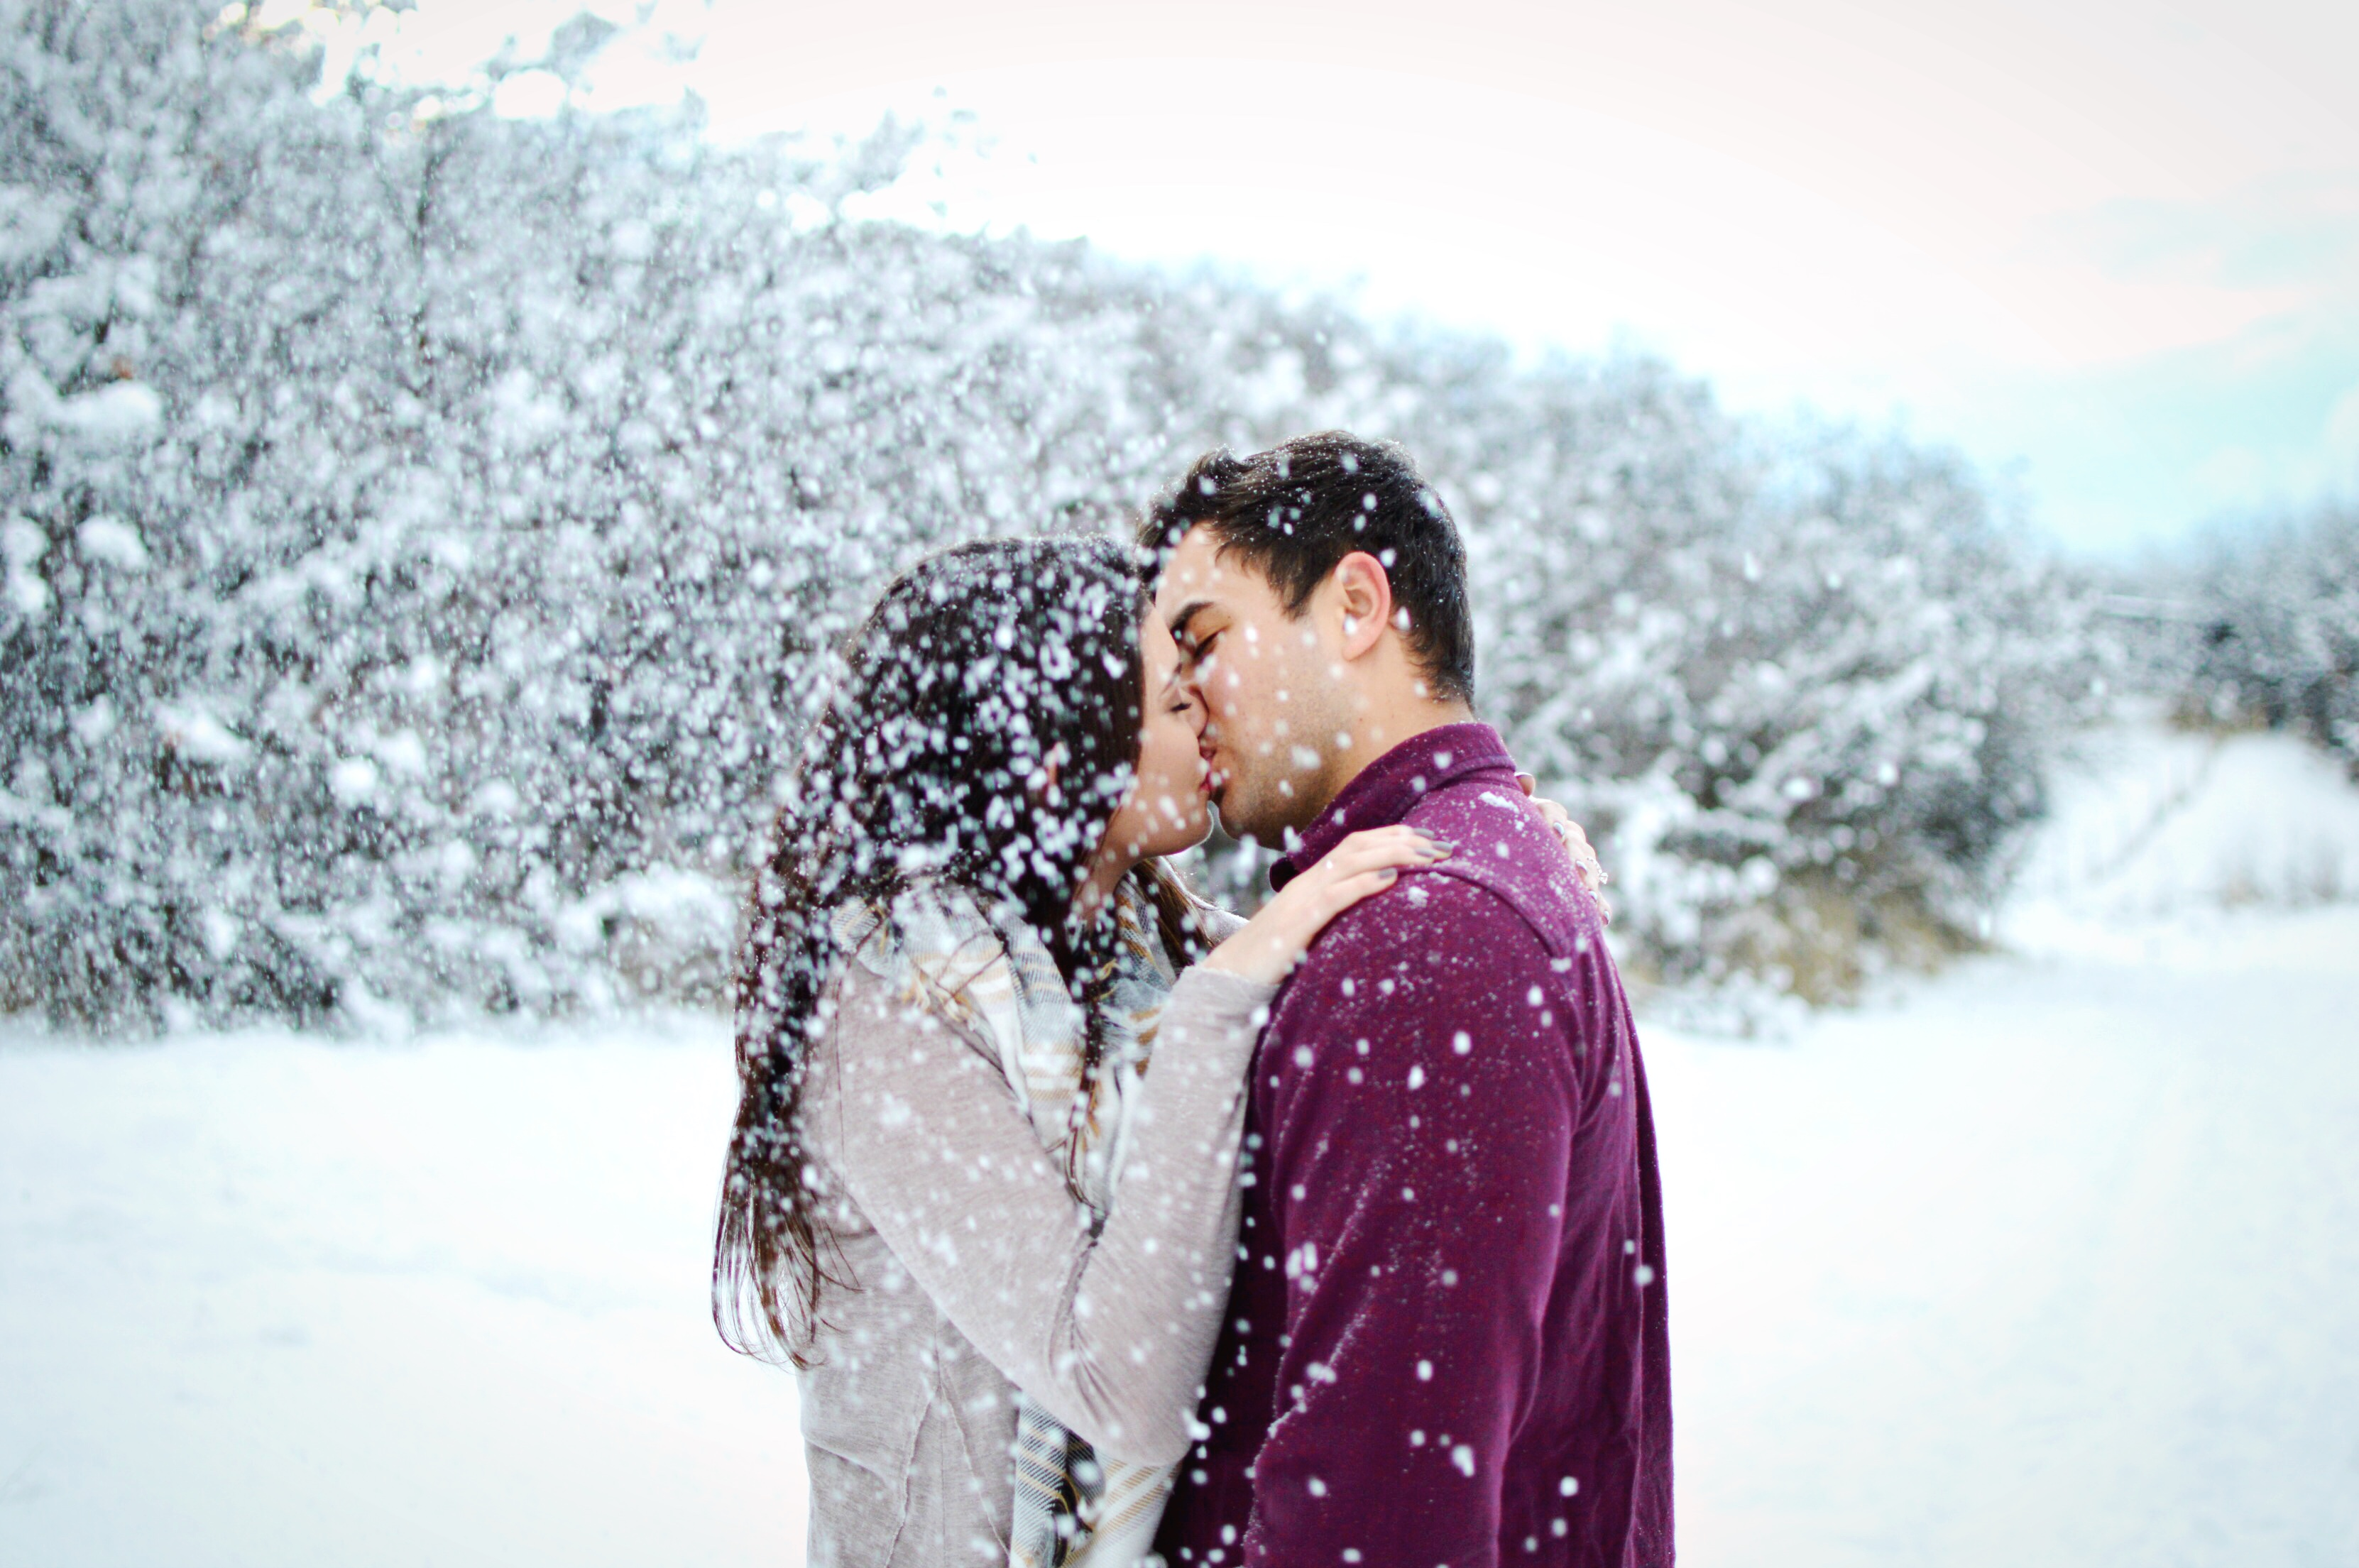 Chelsie Caroline Photography: A snowy engagement shoot pose idea // Hey There, Chelsie